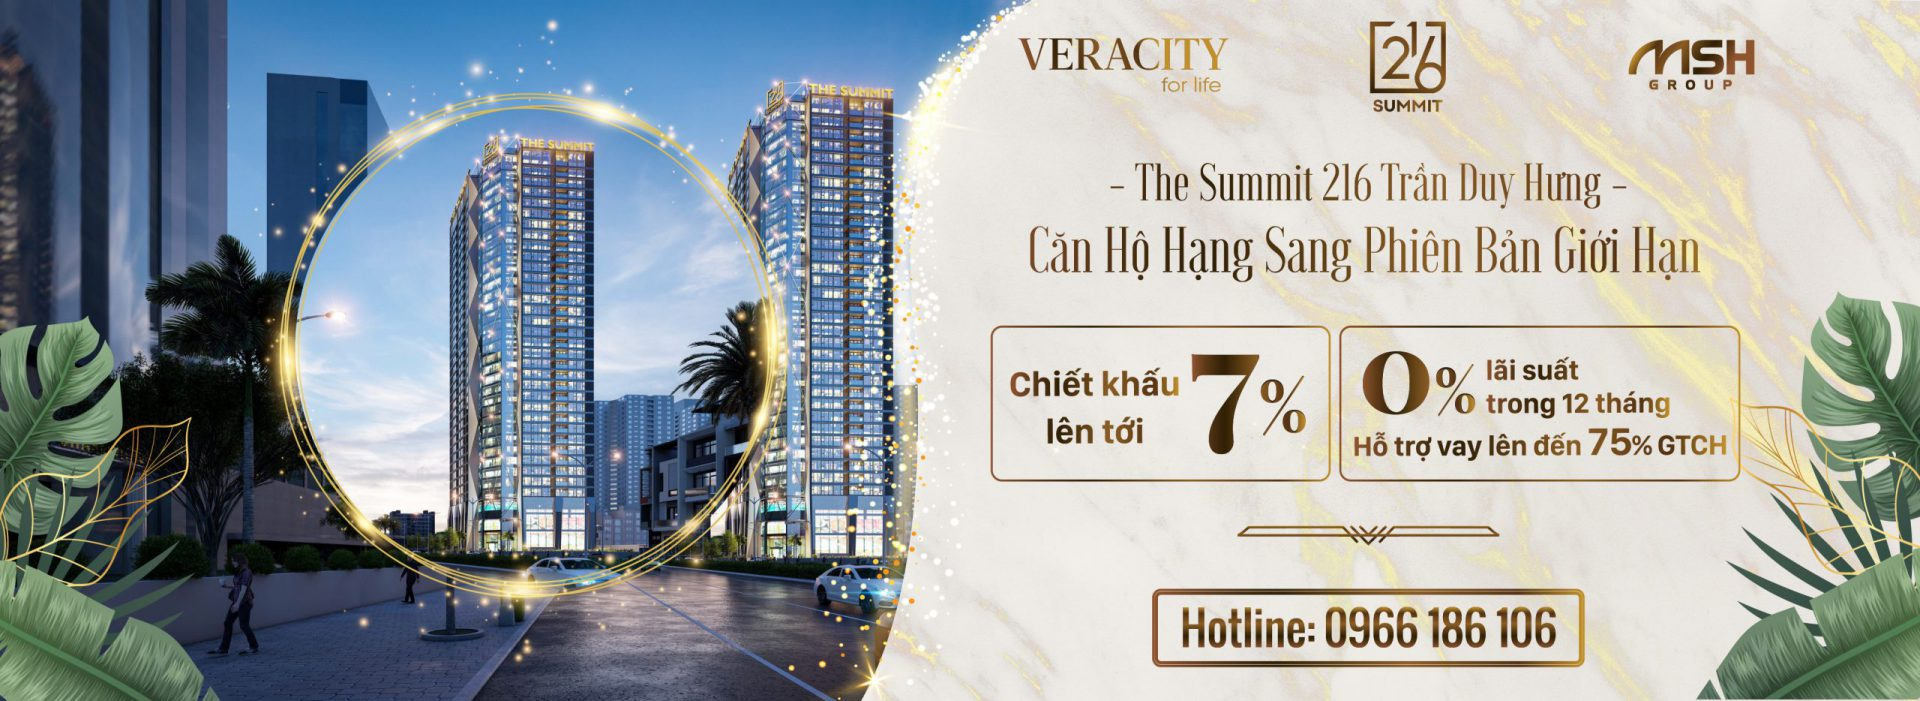 banner the summit 216 tran duy hung